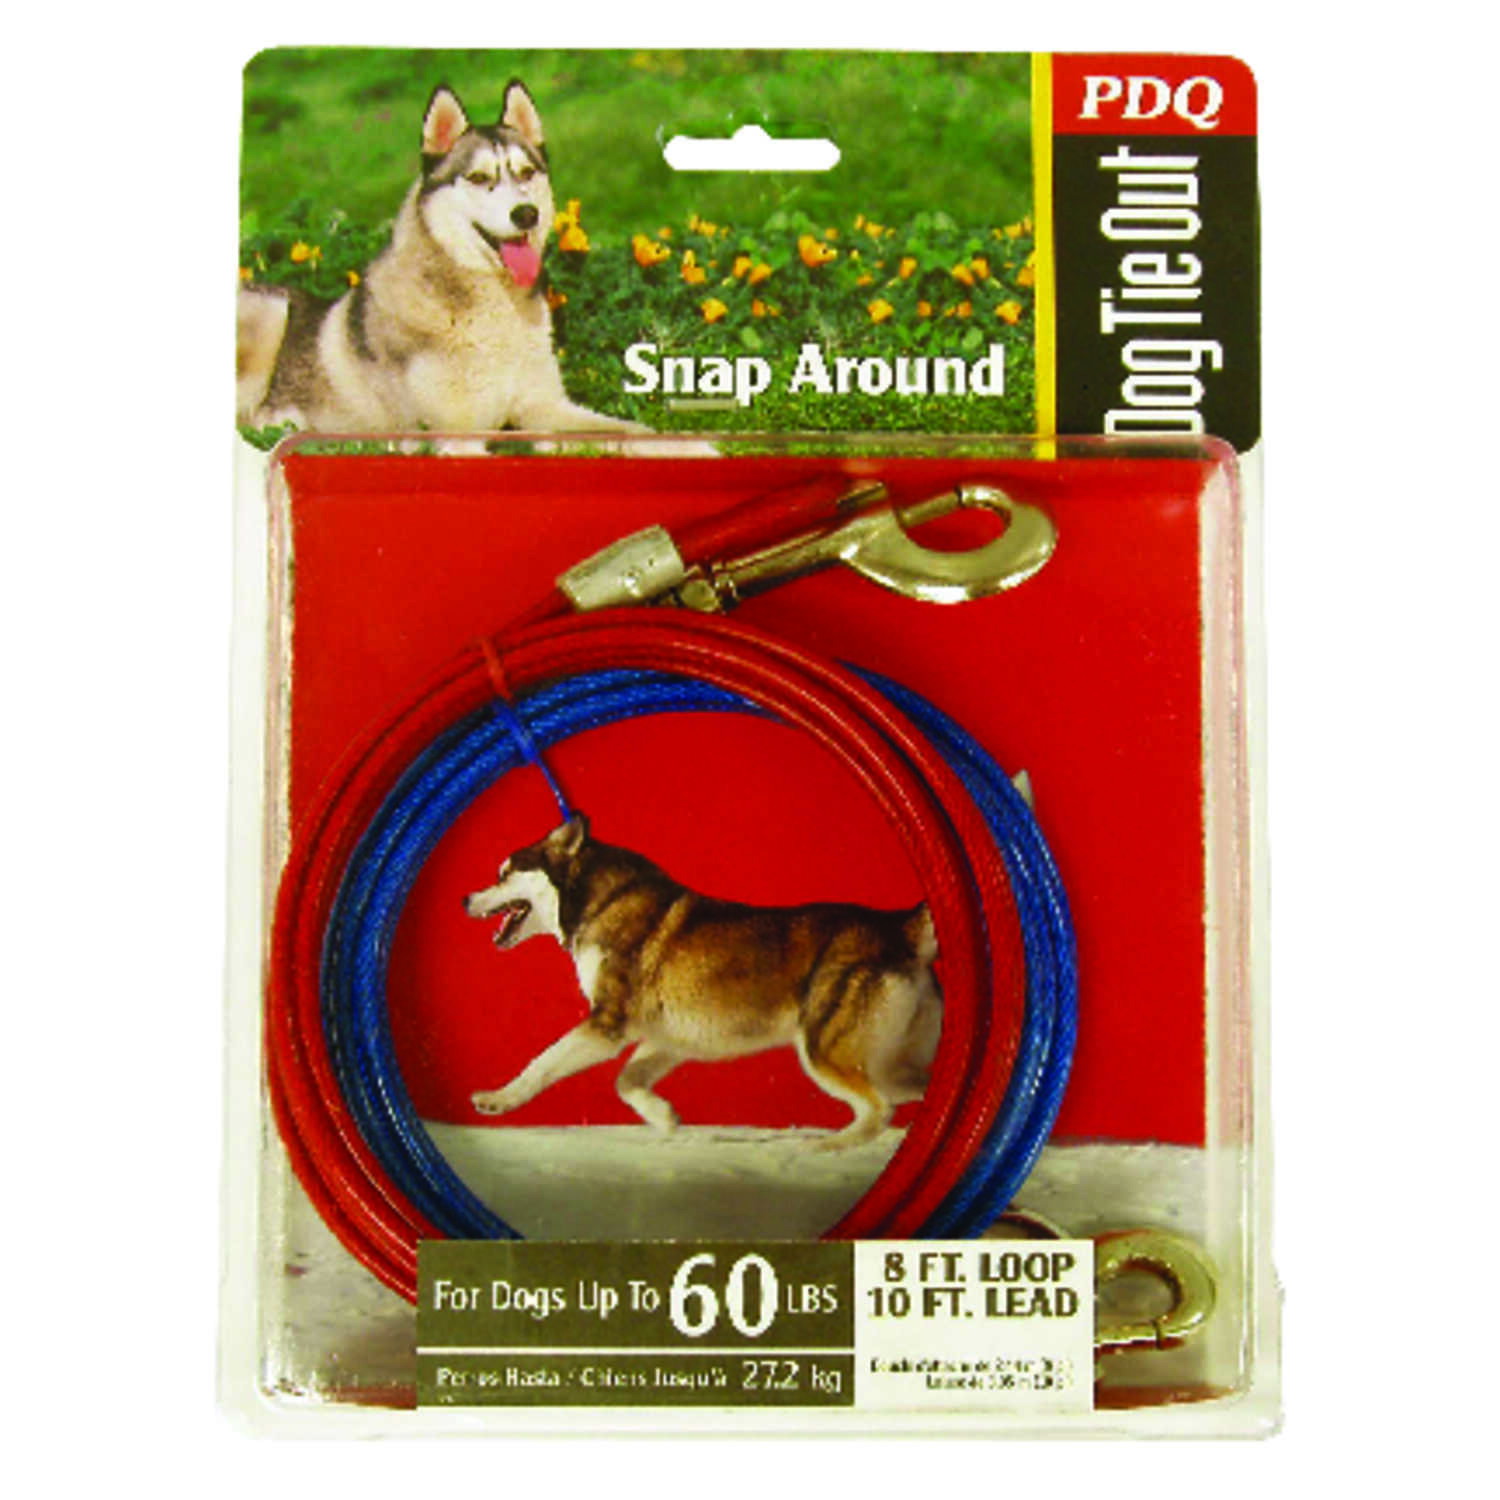 Boss Pet  Snap Around  Red  Vinyl Coated Cable  Dog  Tie Out  Large